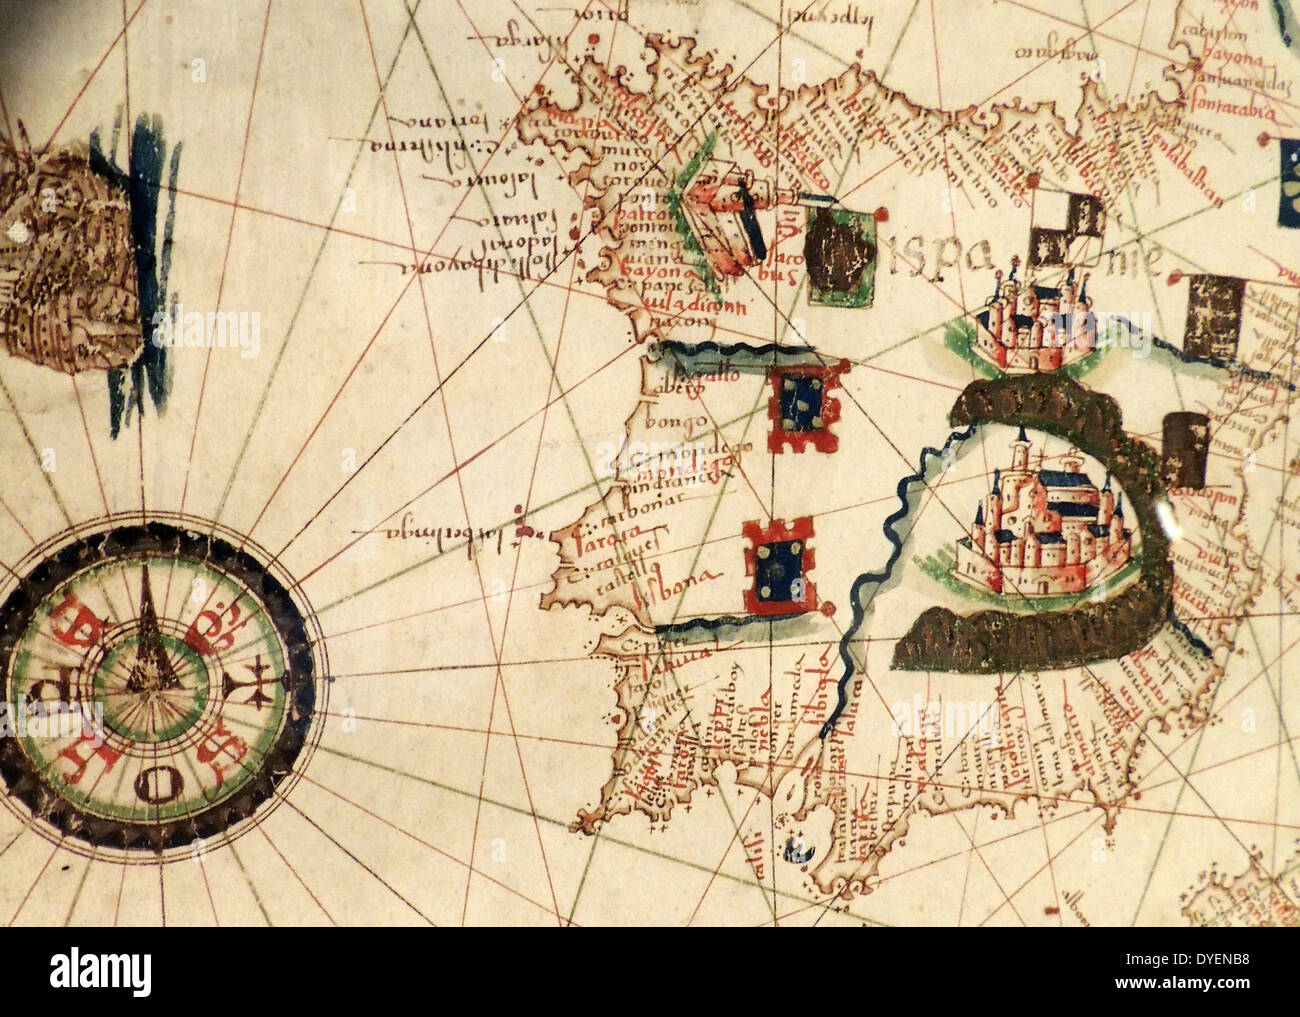 Spain and Portugal depicted in Jacopo Russo Map of the world 16th century circa 1528 - Stock Image